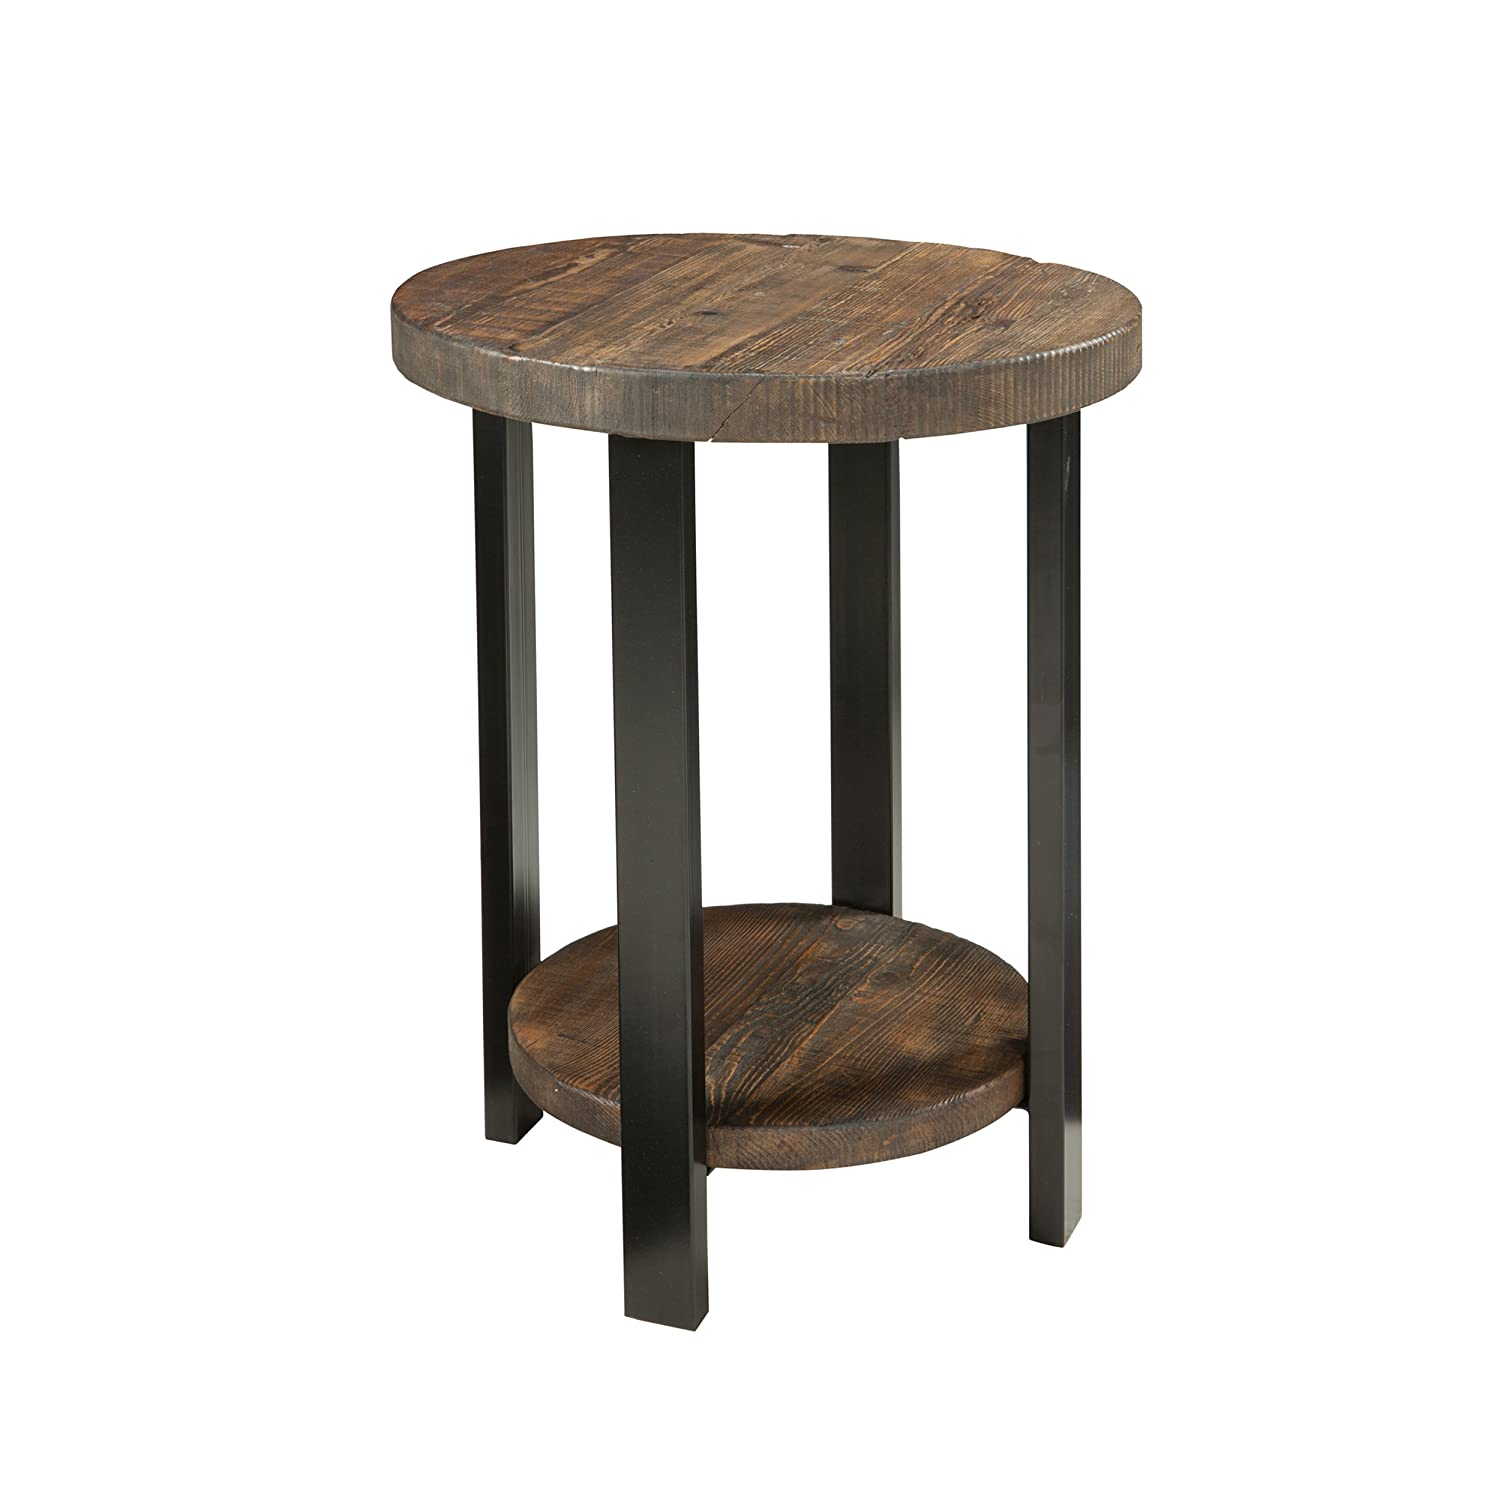 Alaterre AMBA1520 AZMBA1520 Sonoma Rustic Natural Round End Table, Brown